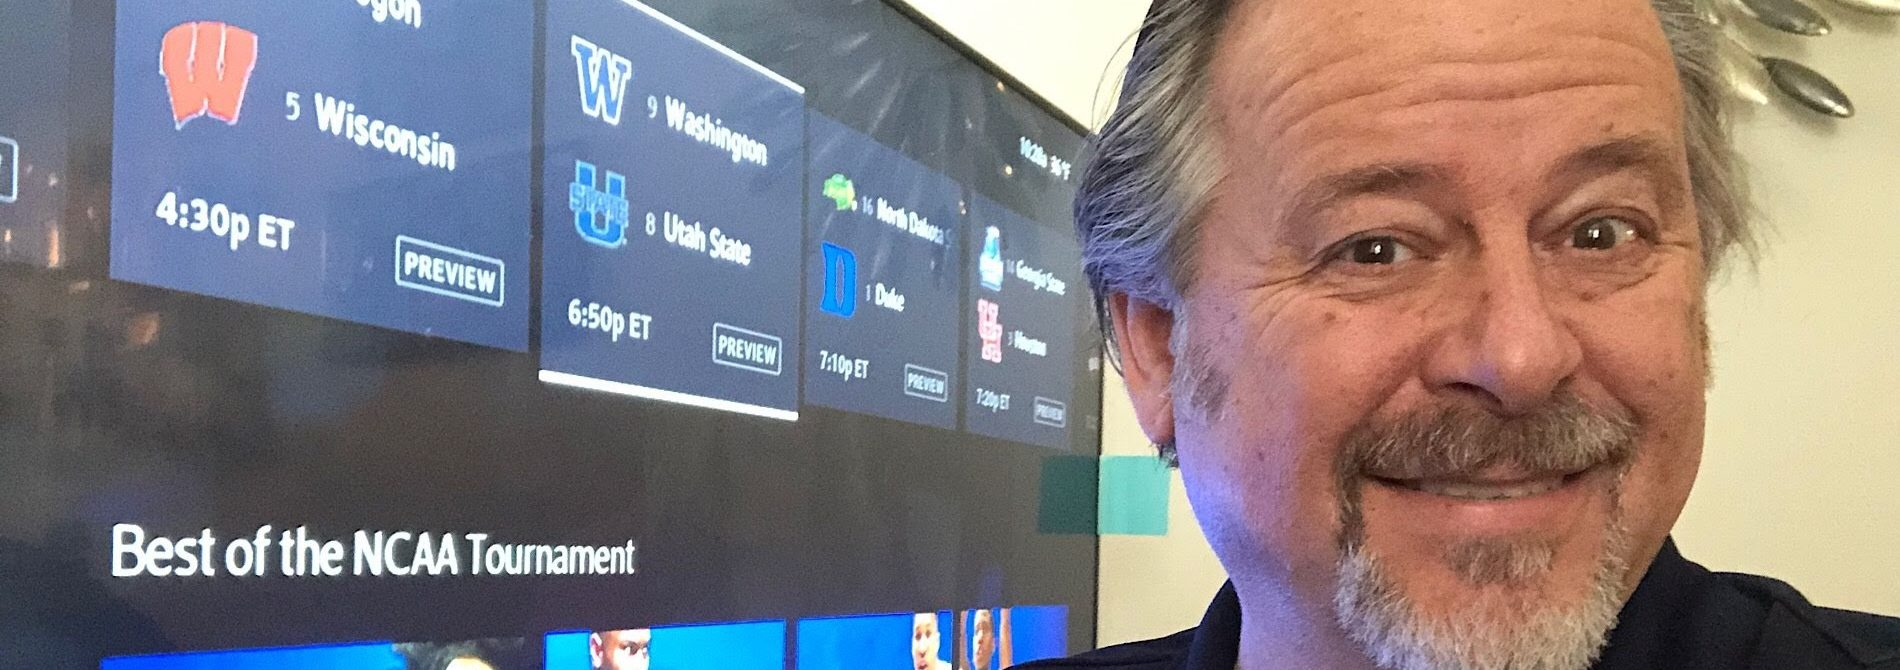 man in front of TV screen with ncaa basketball tournament choices